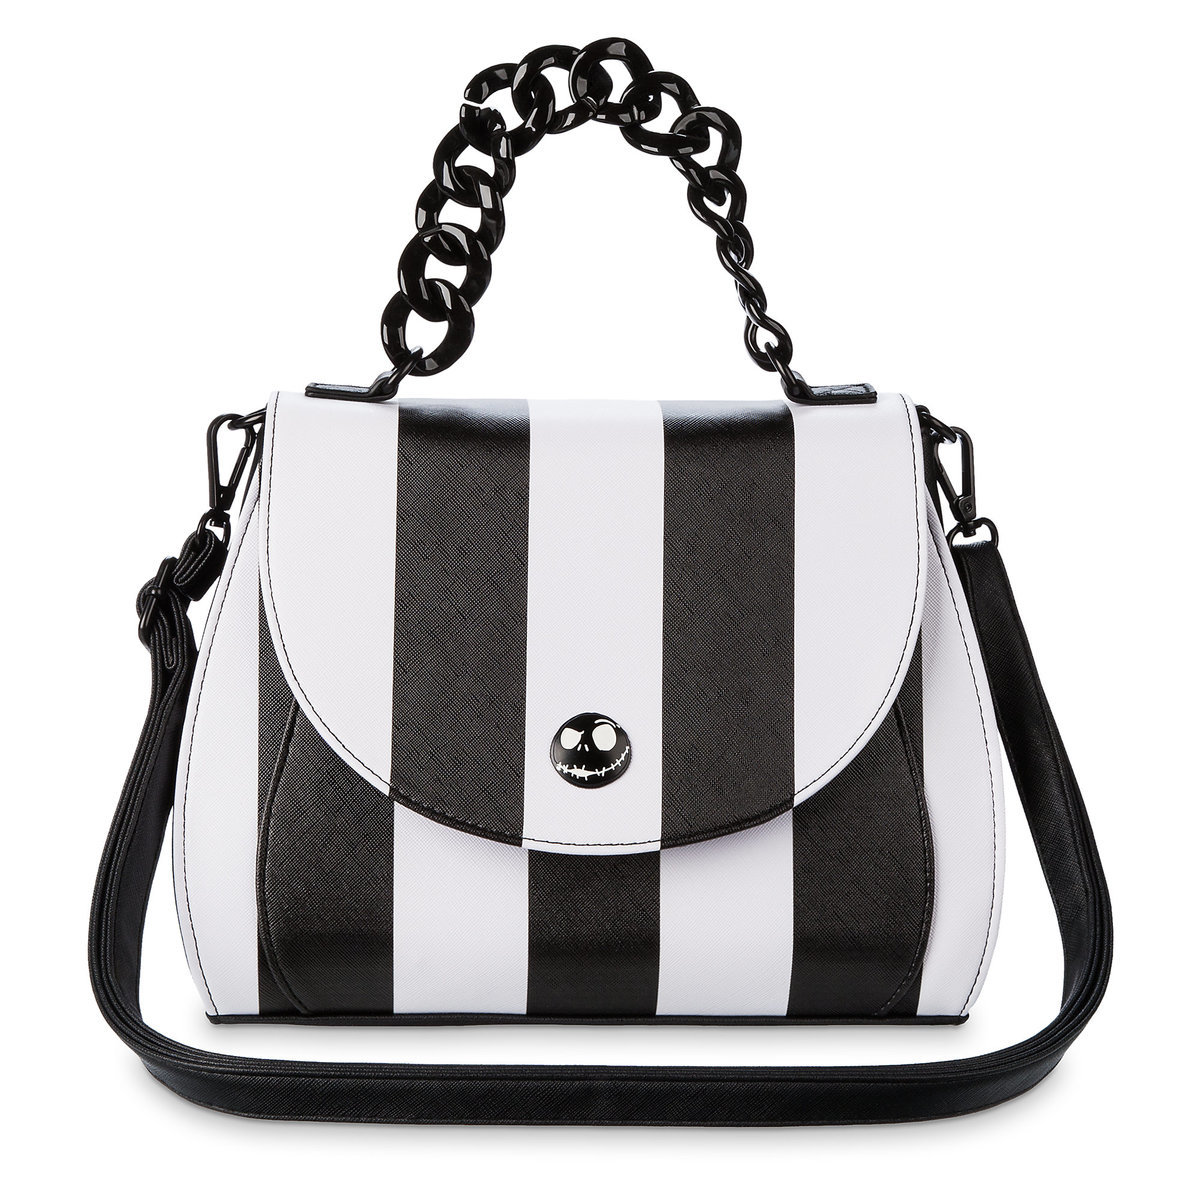 3cfbb714f30 Product Image of Jack Skellington Crossbody Bag by Loungefly - Tim Burton s  The Nightmare Before Christmas